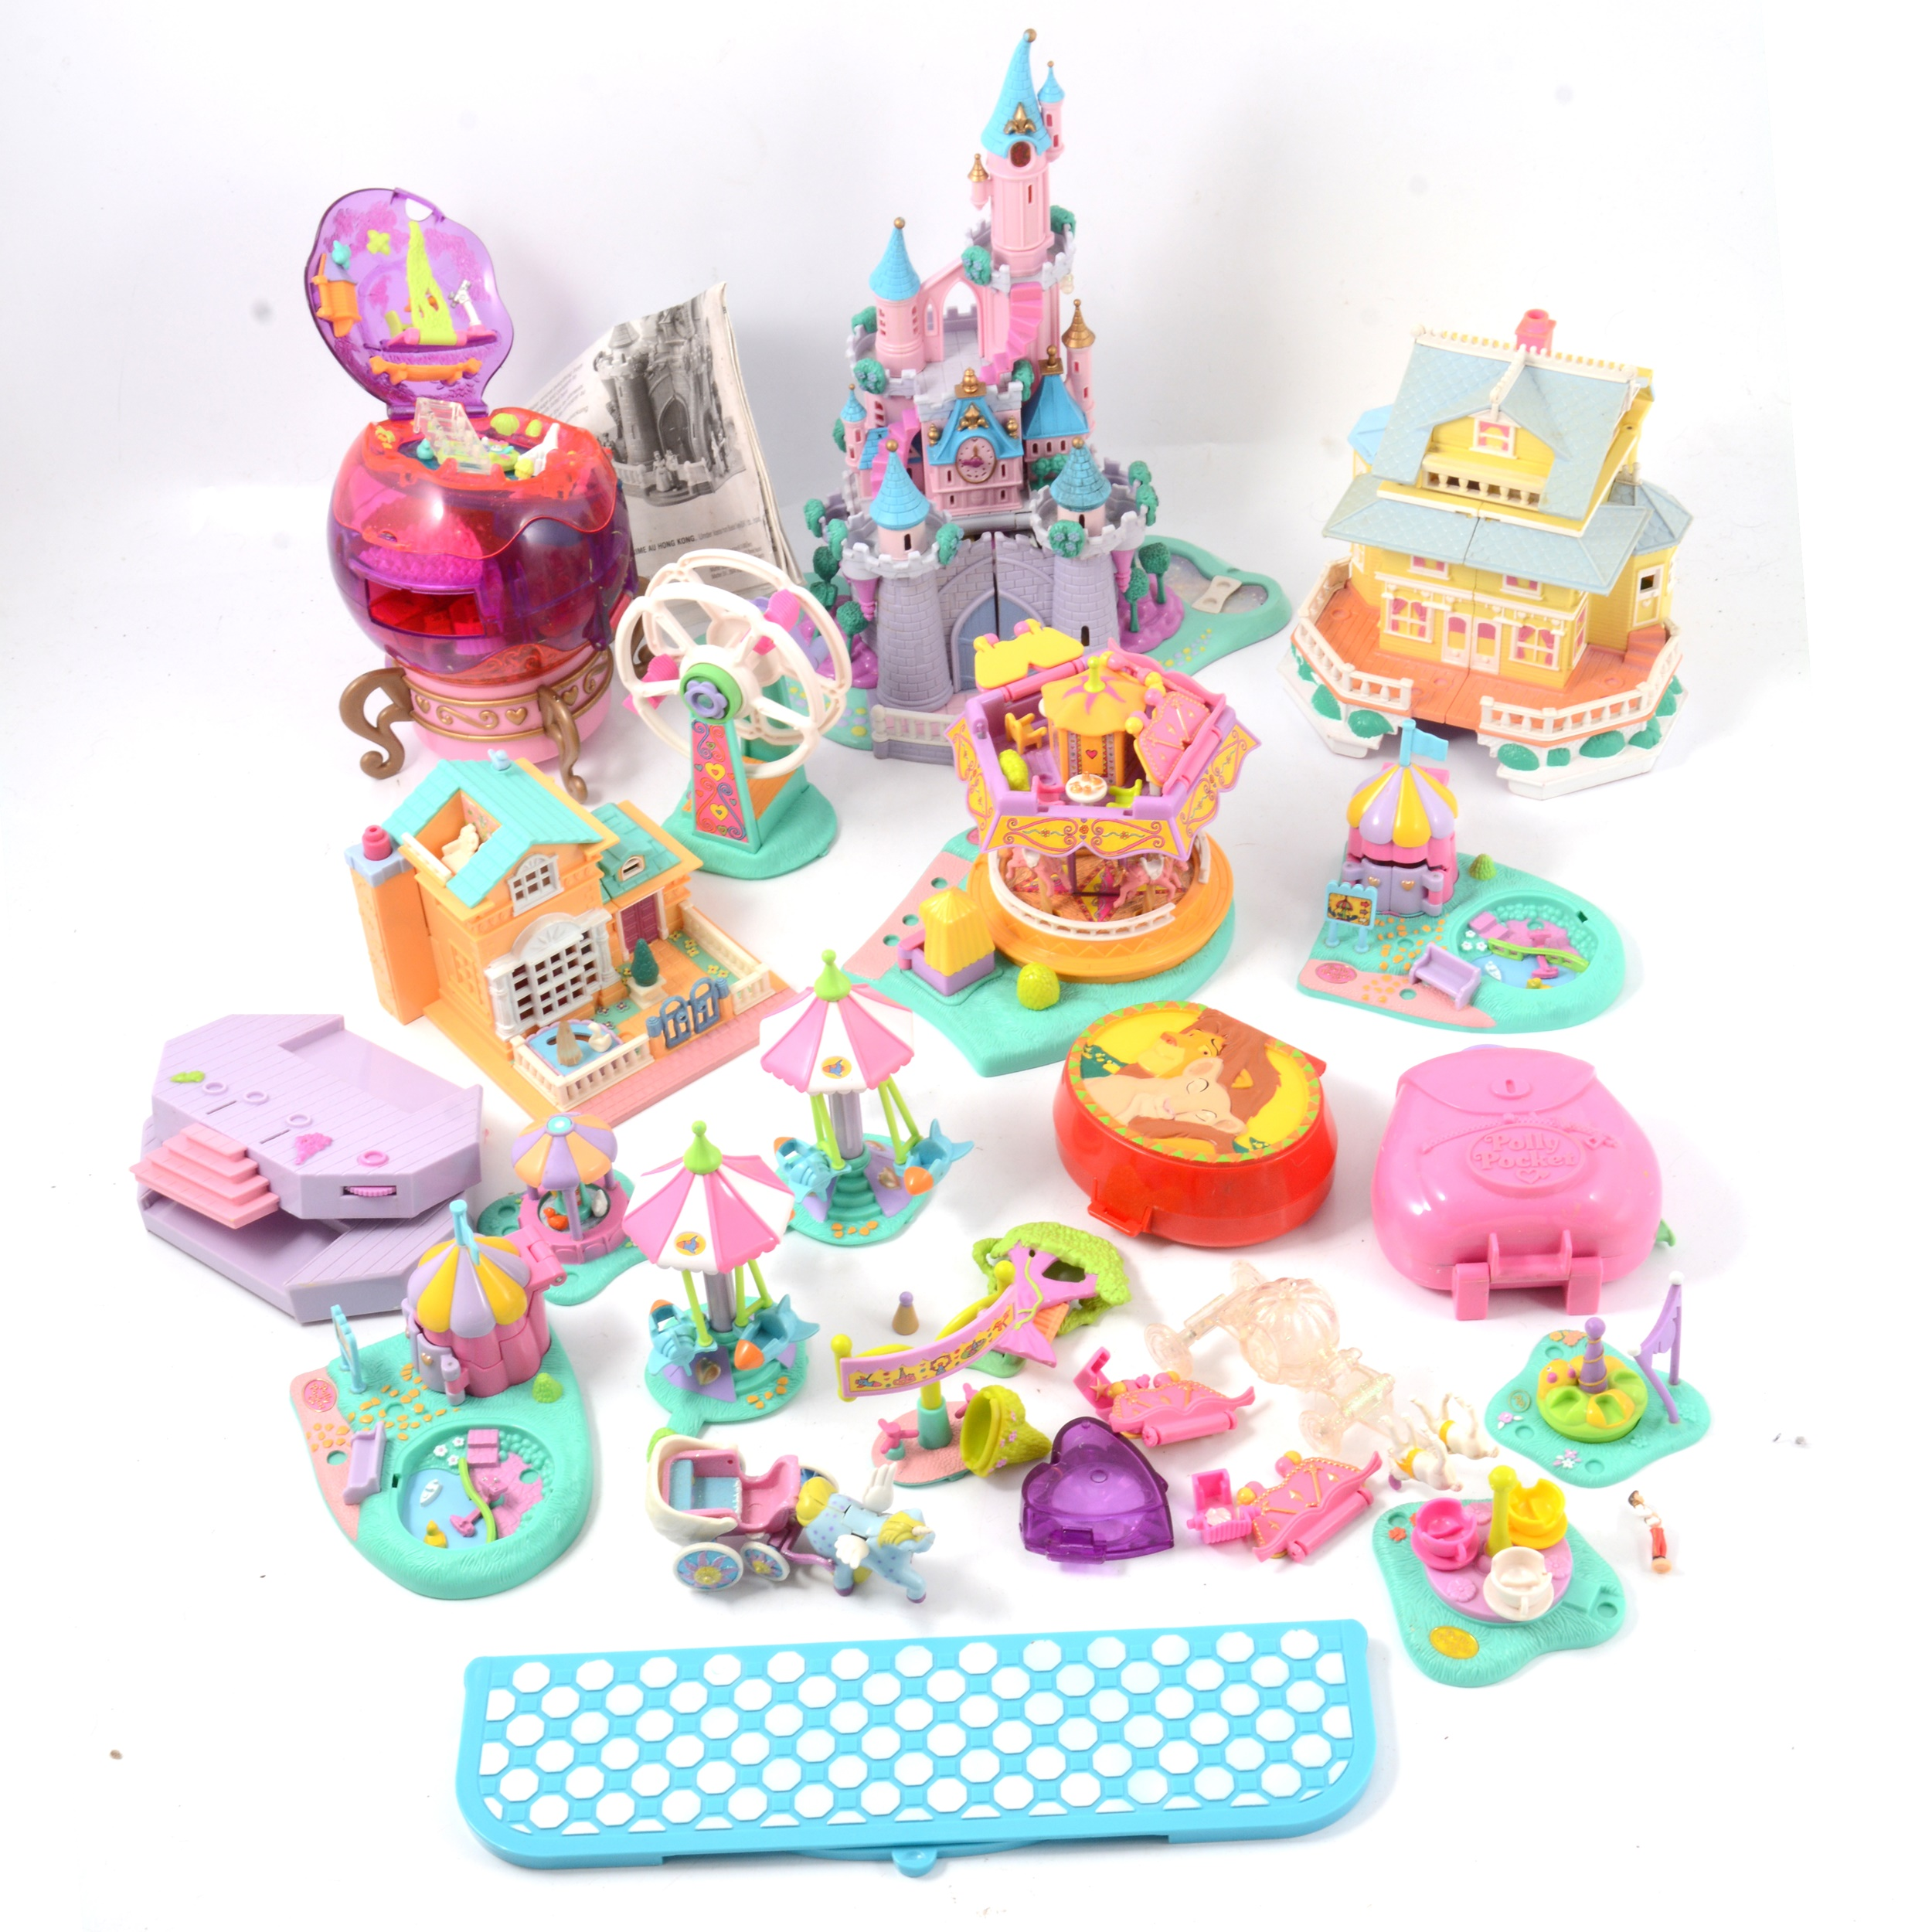 Polly Pockets by Bluebird, a collection of approx 17 sets and other accessories